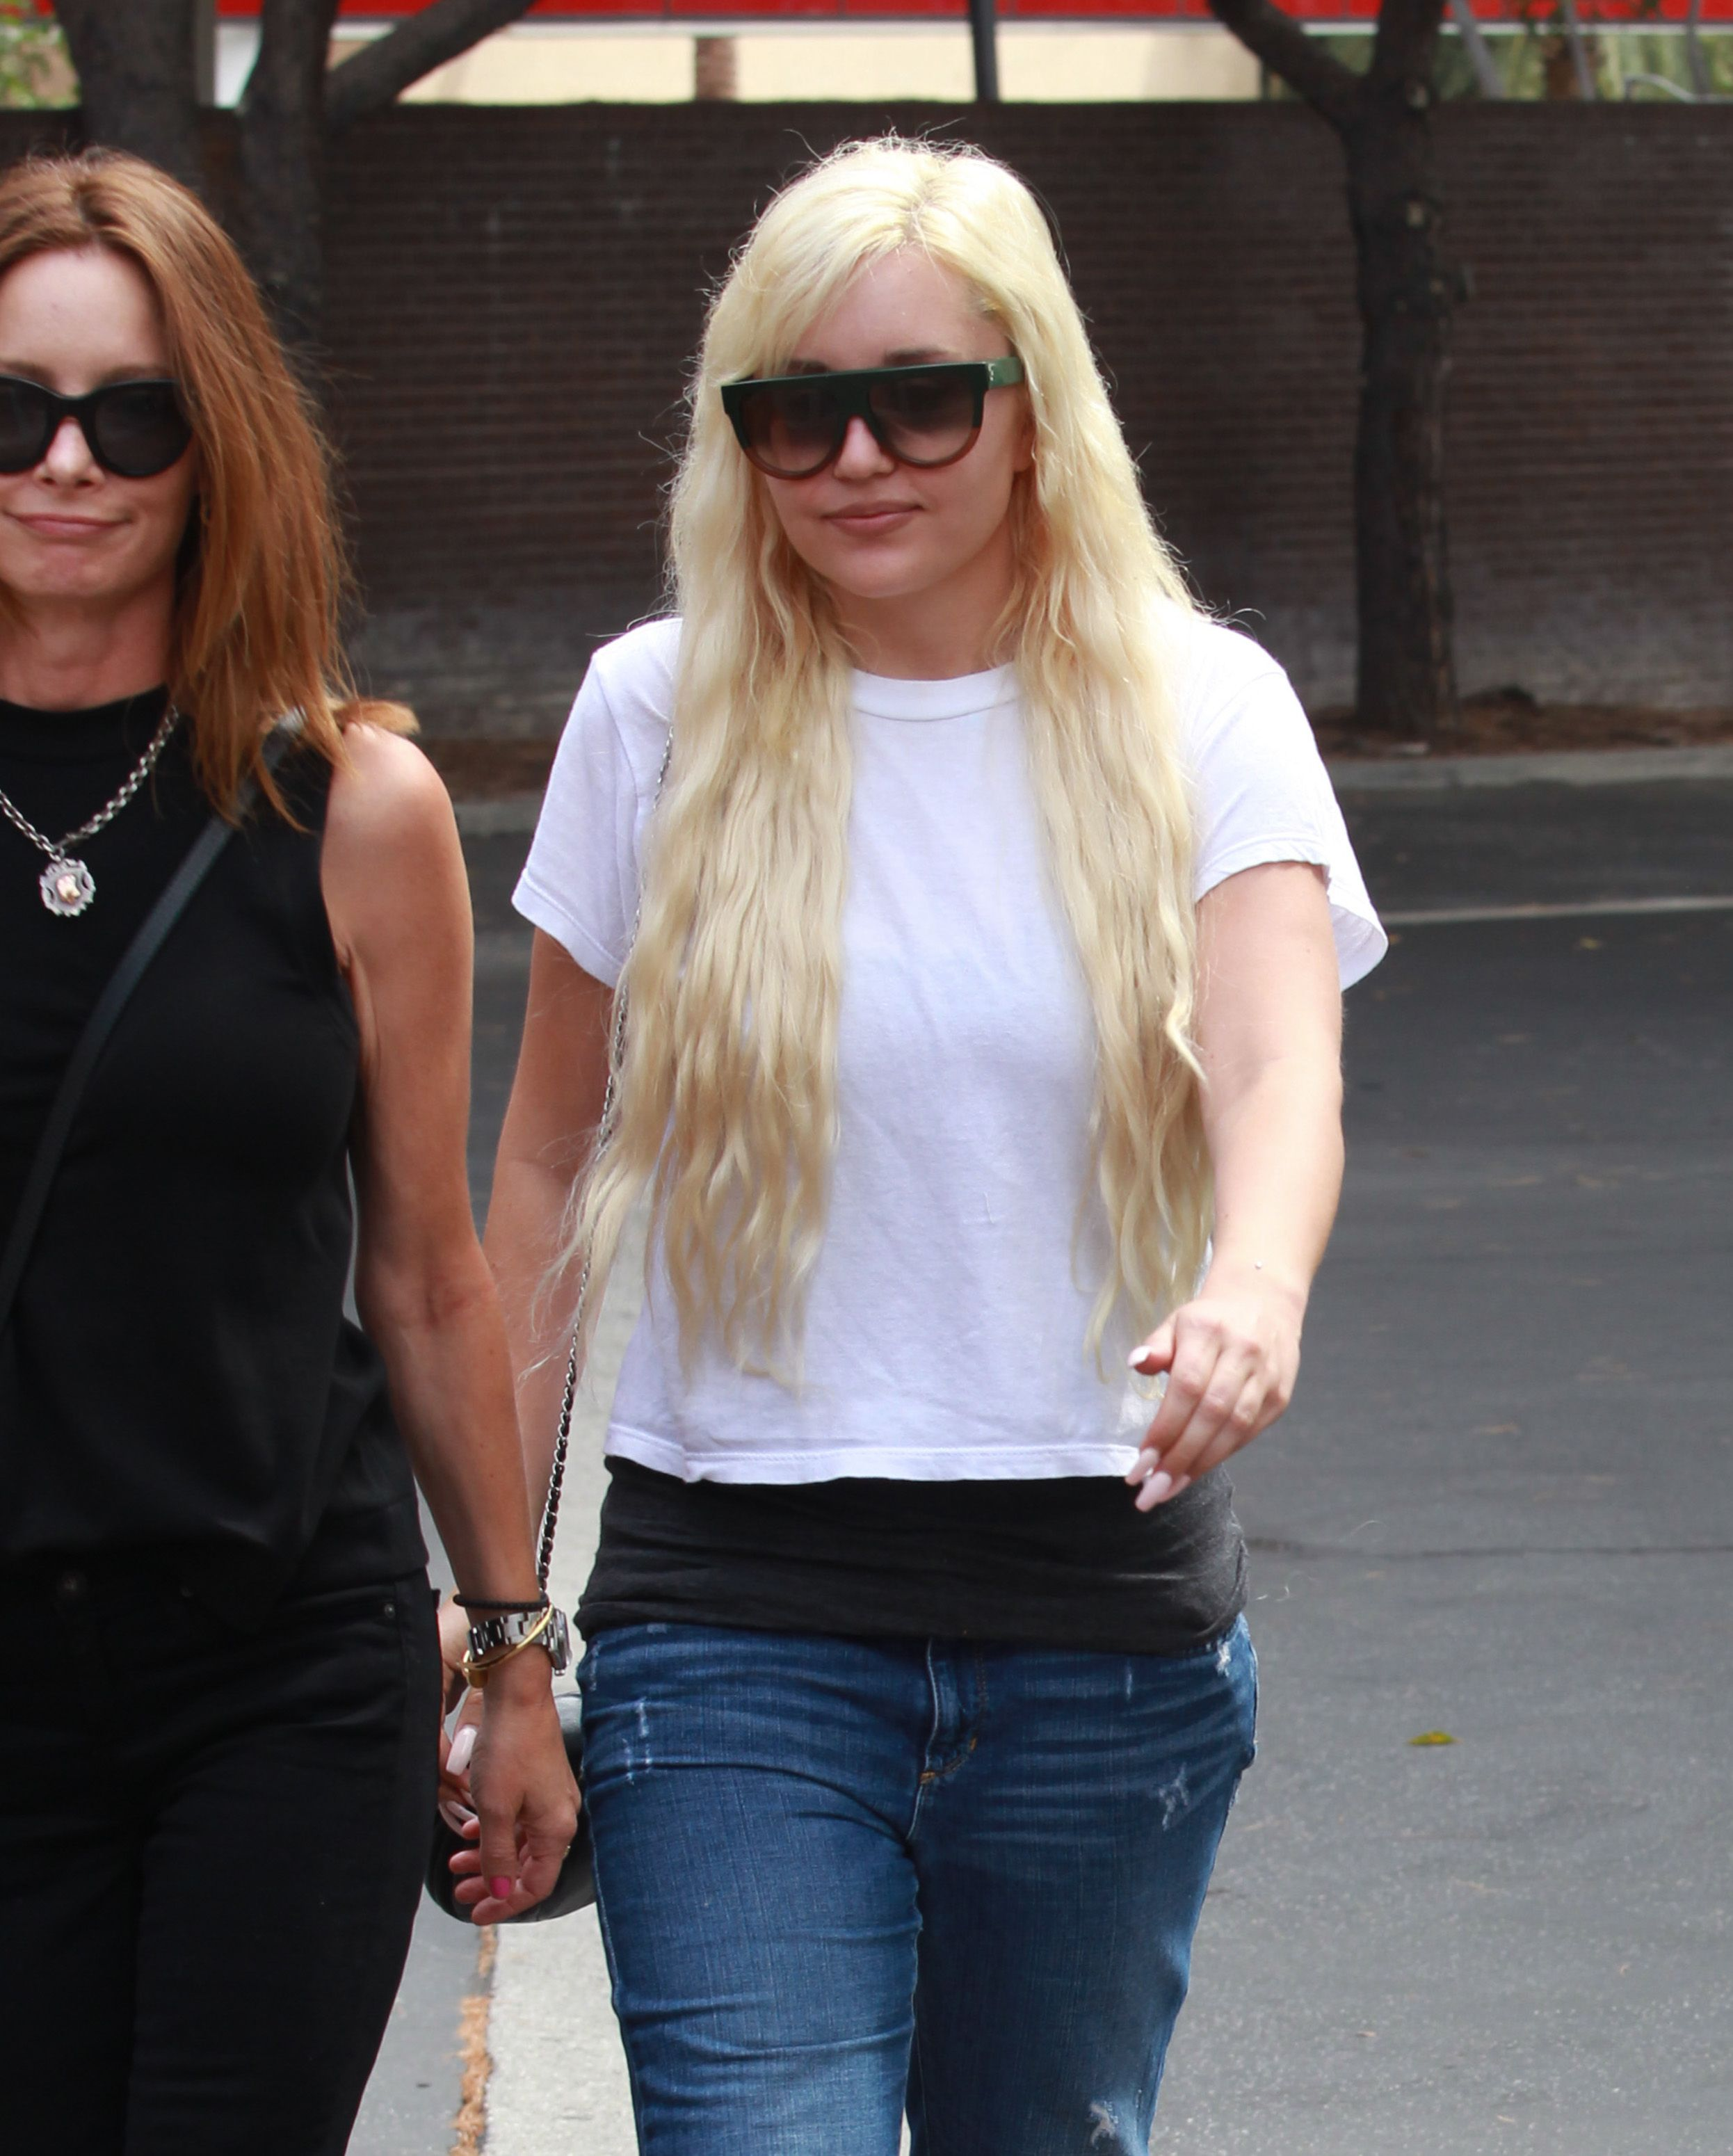 Amanda Bynes walks down the street with sunglasses on